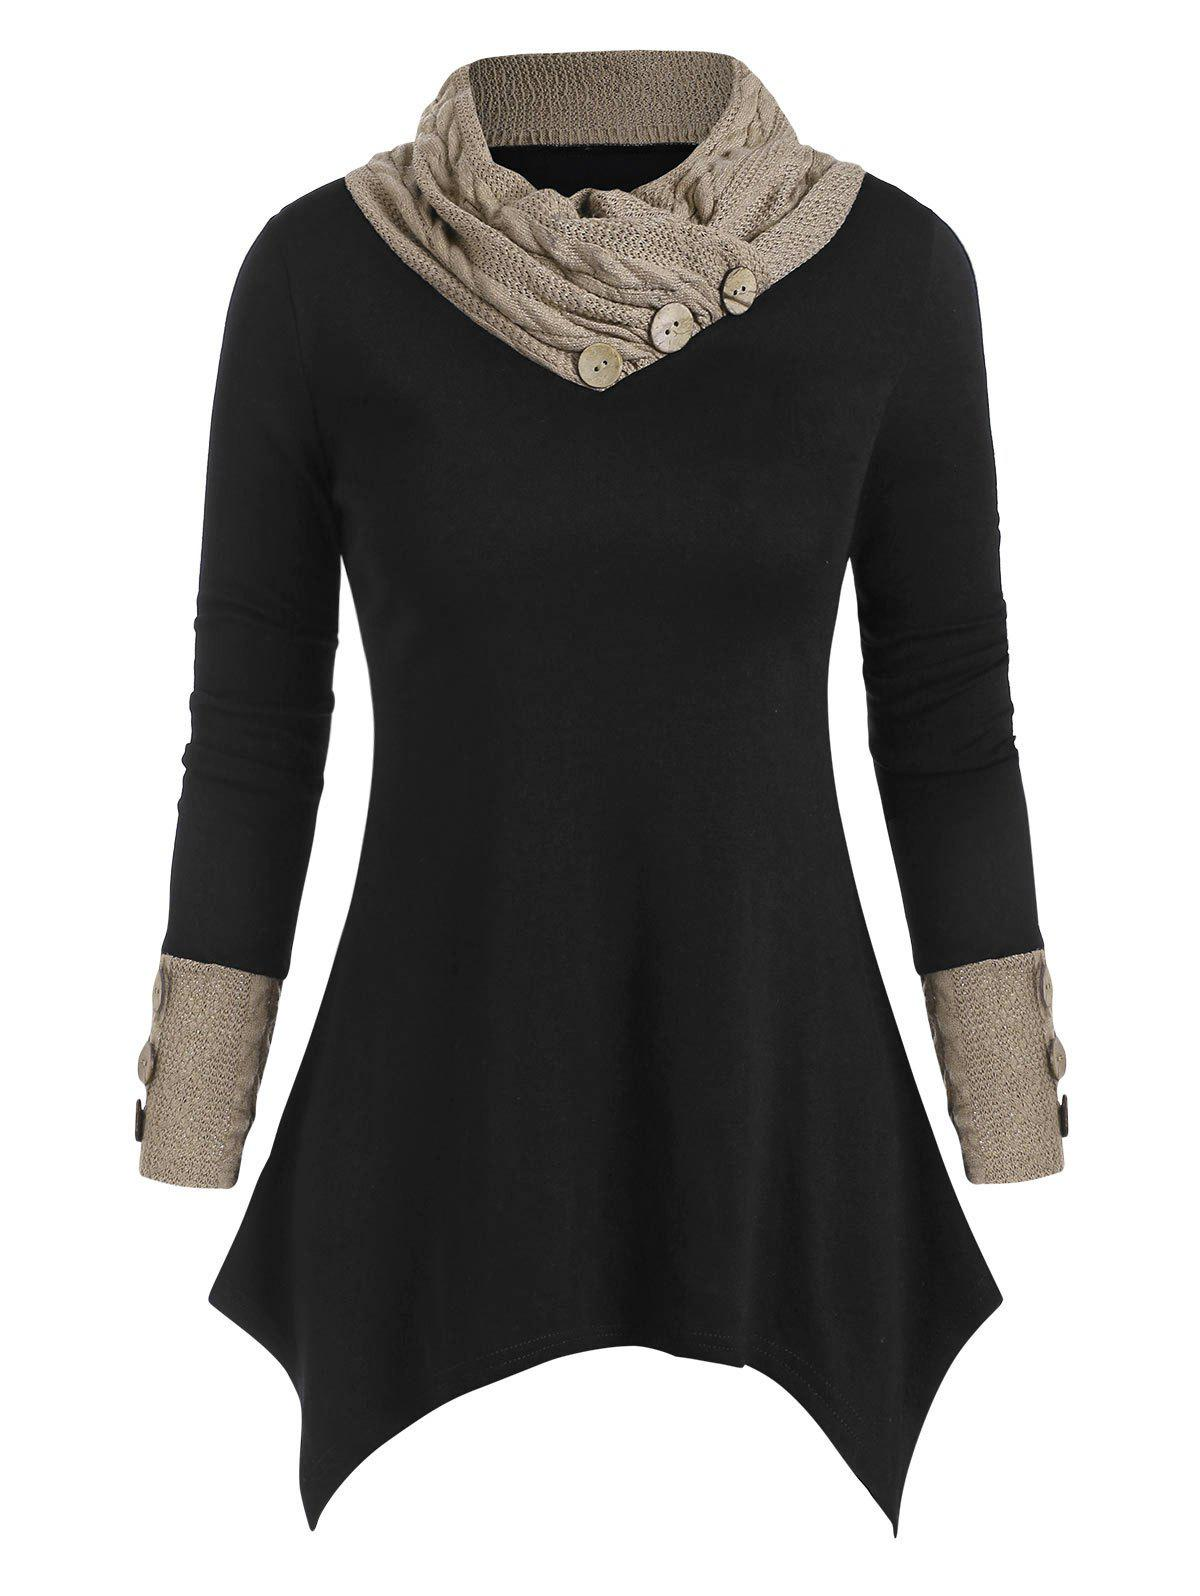 Buttons Cowl Neck Patched Asymmetric Top - BLACK S